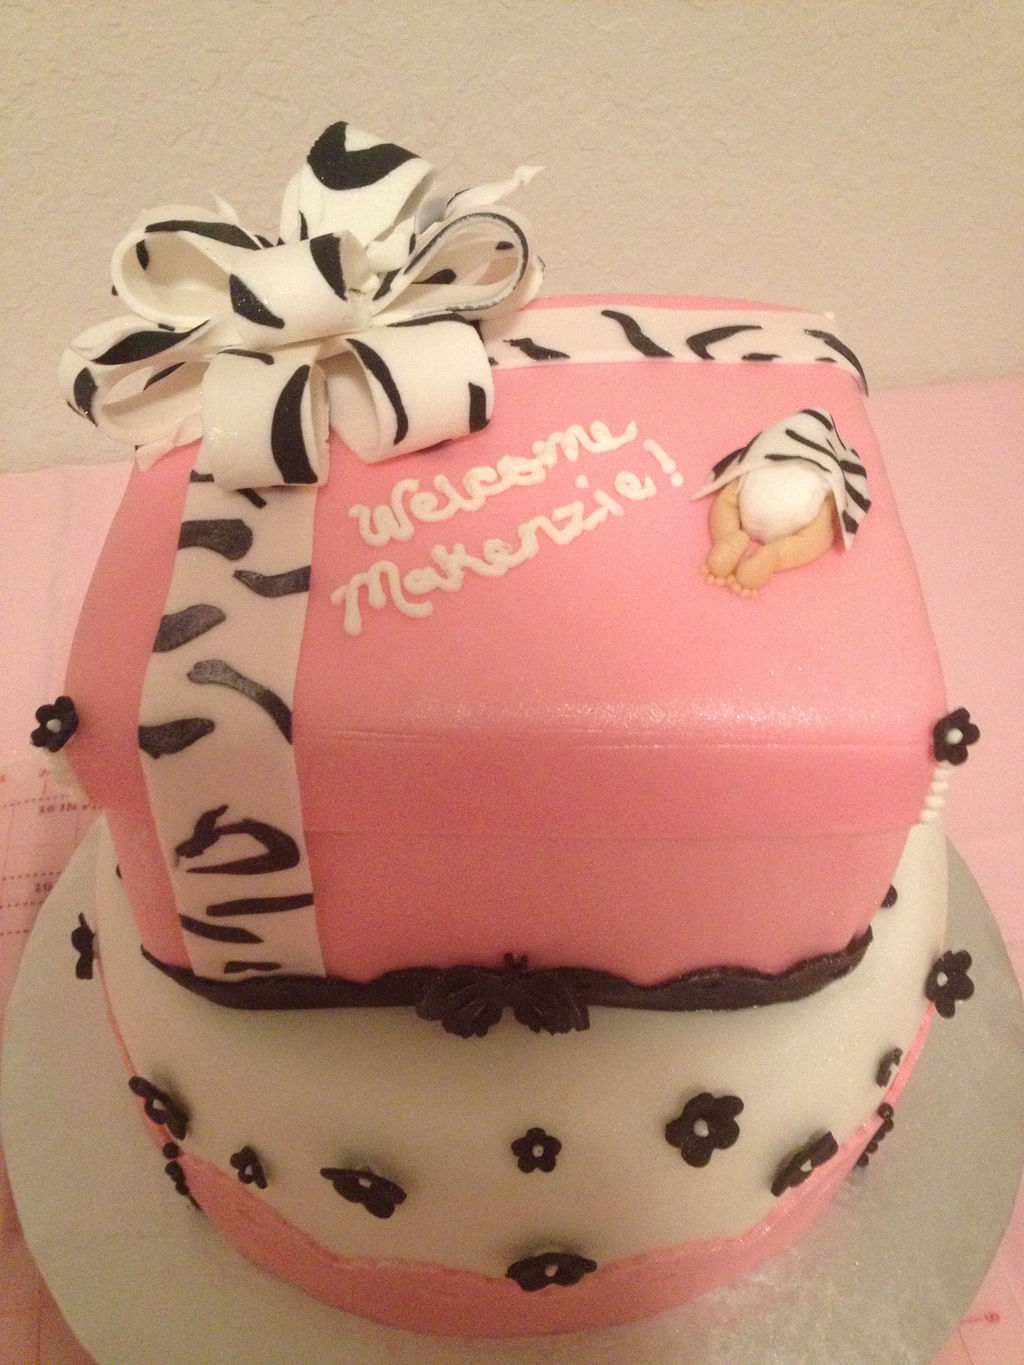 The Pink Rolling Pin Specialty Cakes Cake Art Wedding In